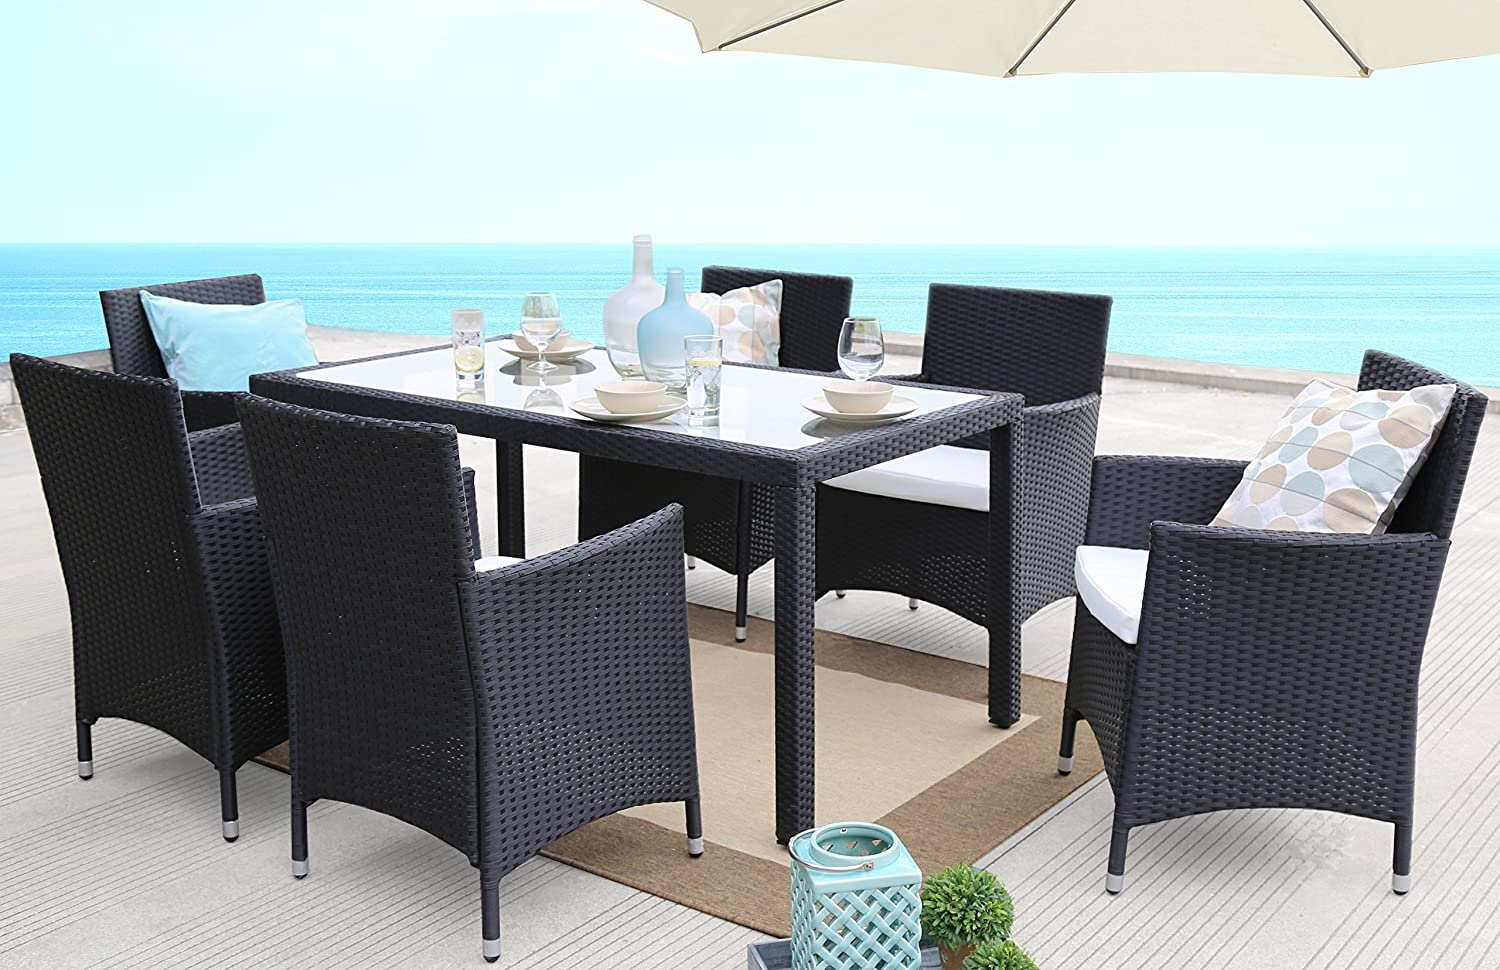 Amazon.com Baner Garden 7 Pieces Outdoor Furniture Complete Patio PE Wicker Rattan Garden Dining Set Full Black Kitchen \u0026 Dining & Amazon.com: Baner Garden 7 Pieces Outdoor Furniture Complete Patio ...